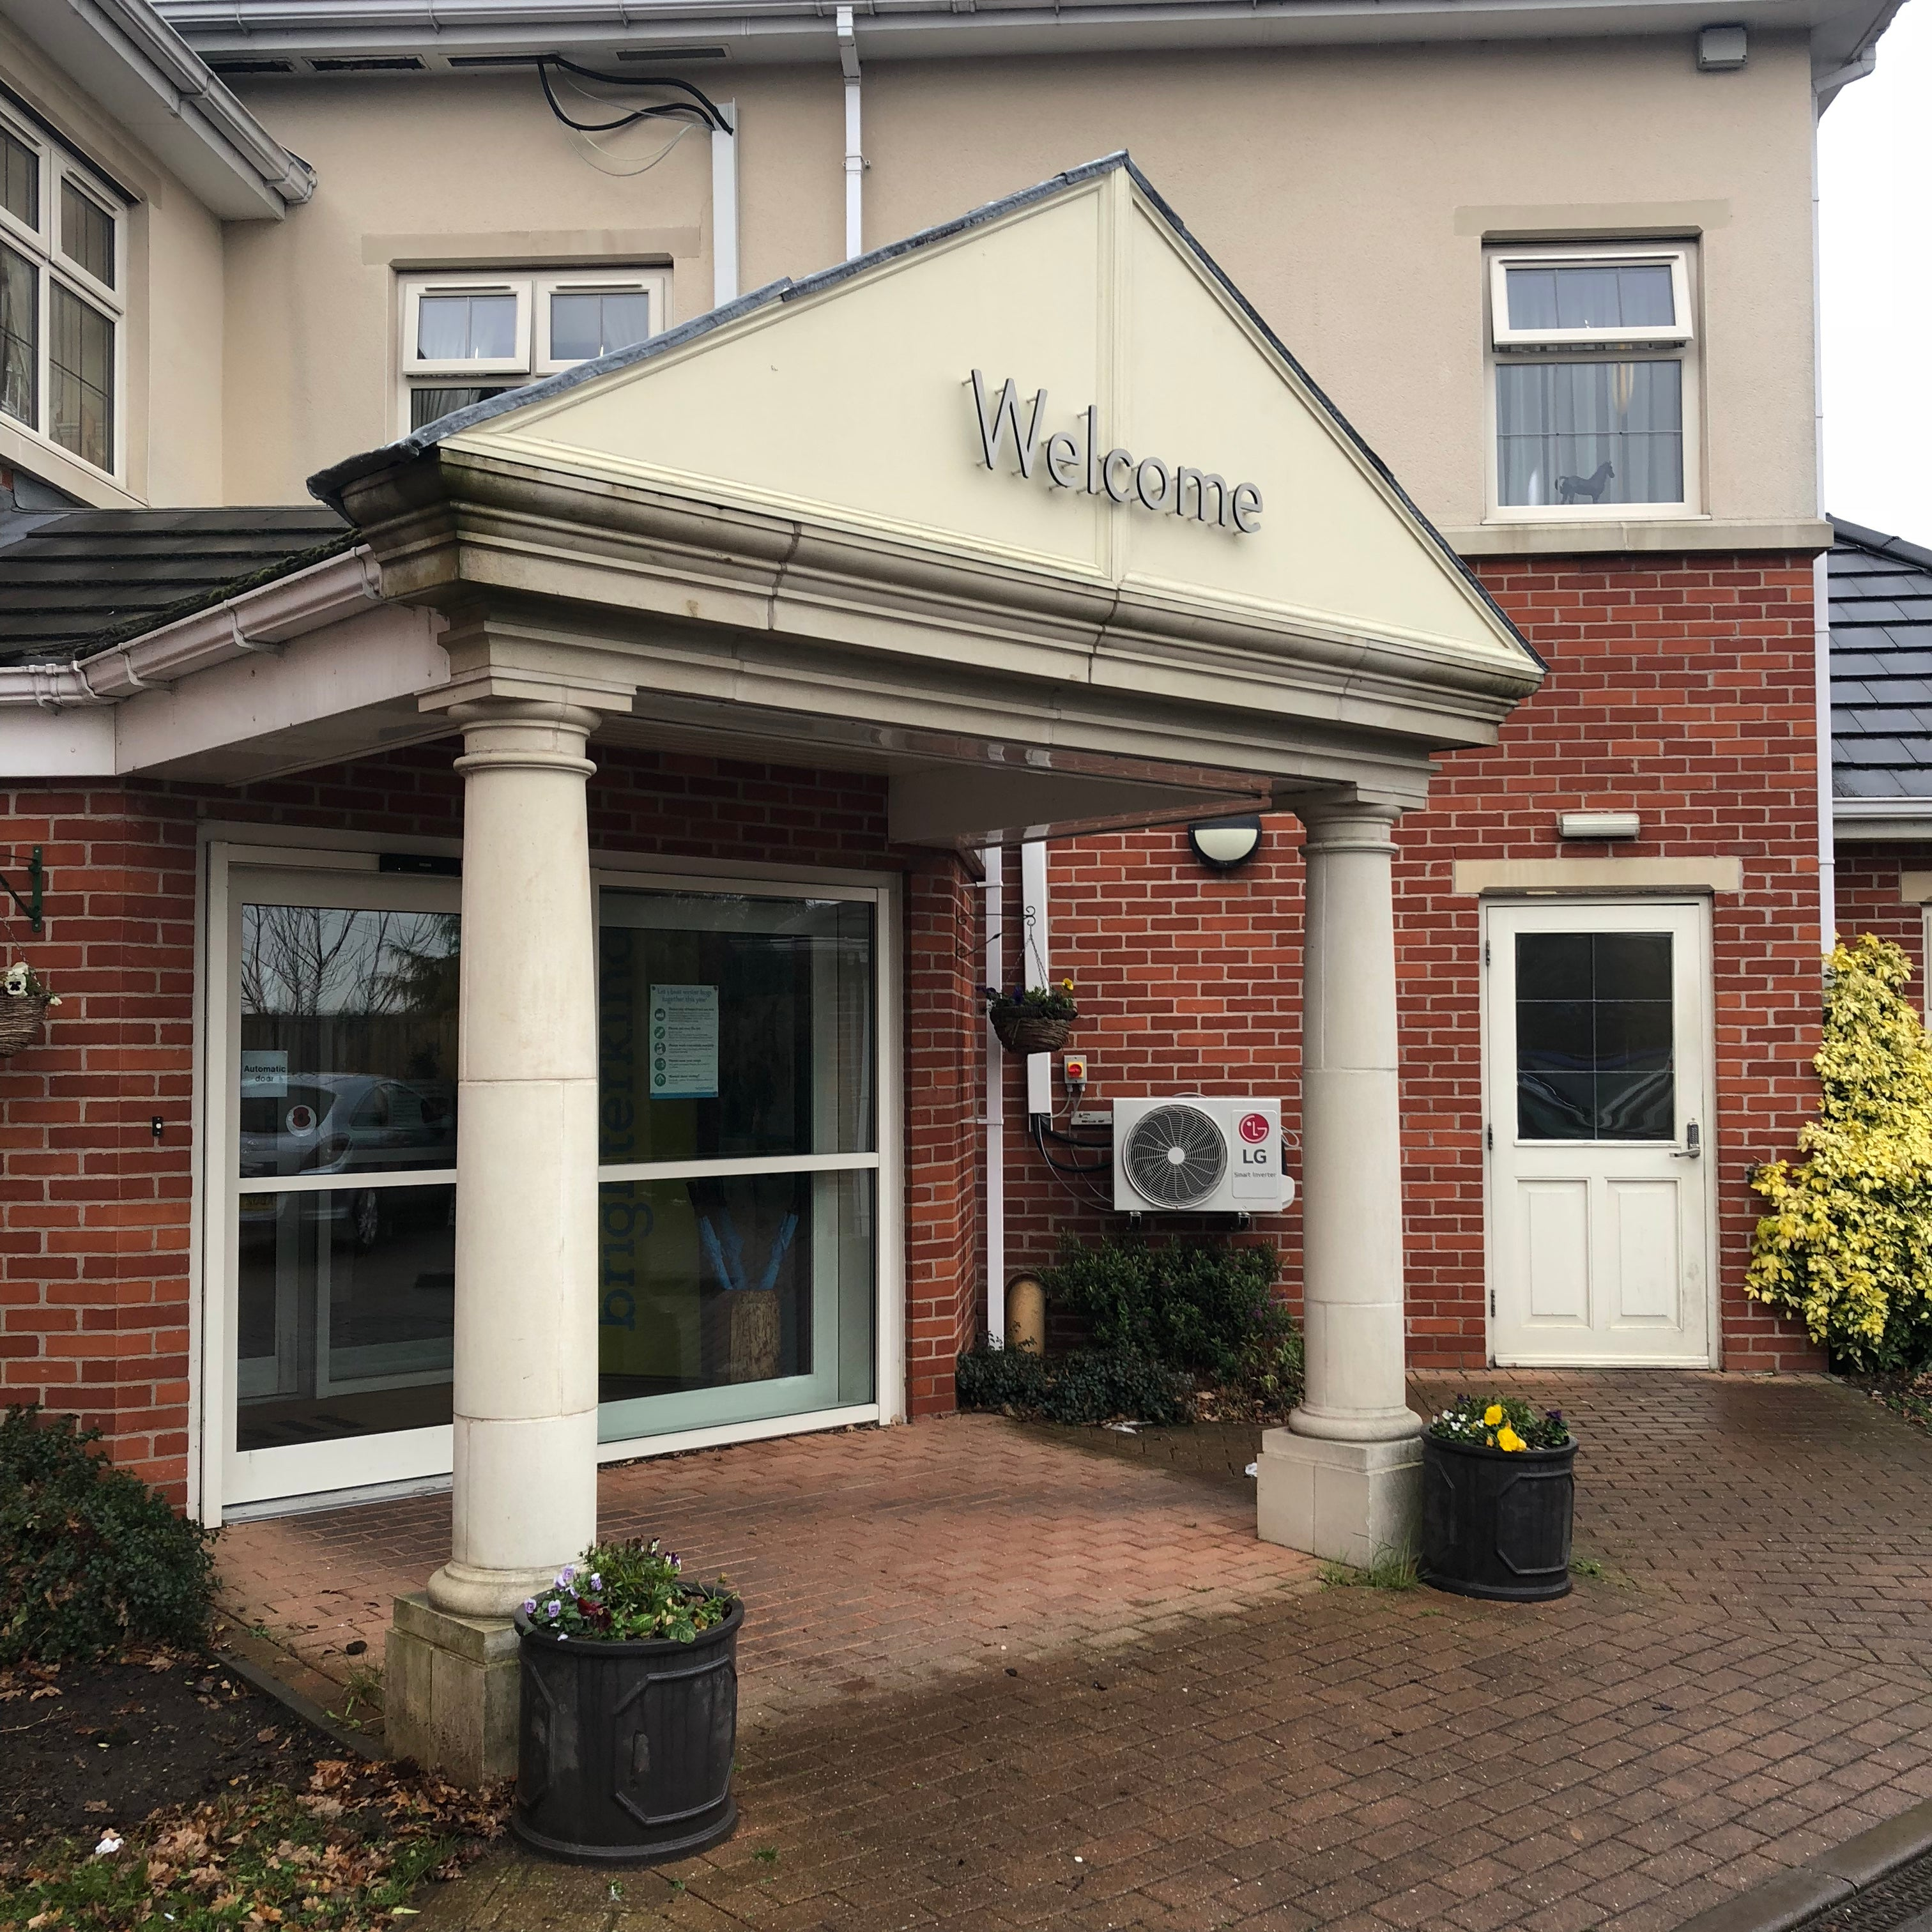 The entrance to Hall Park Care Home in Nottingham